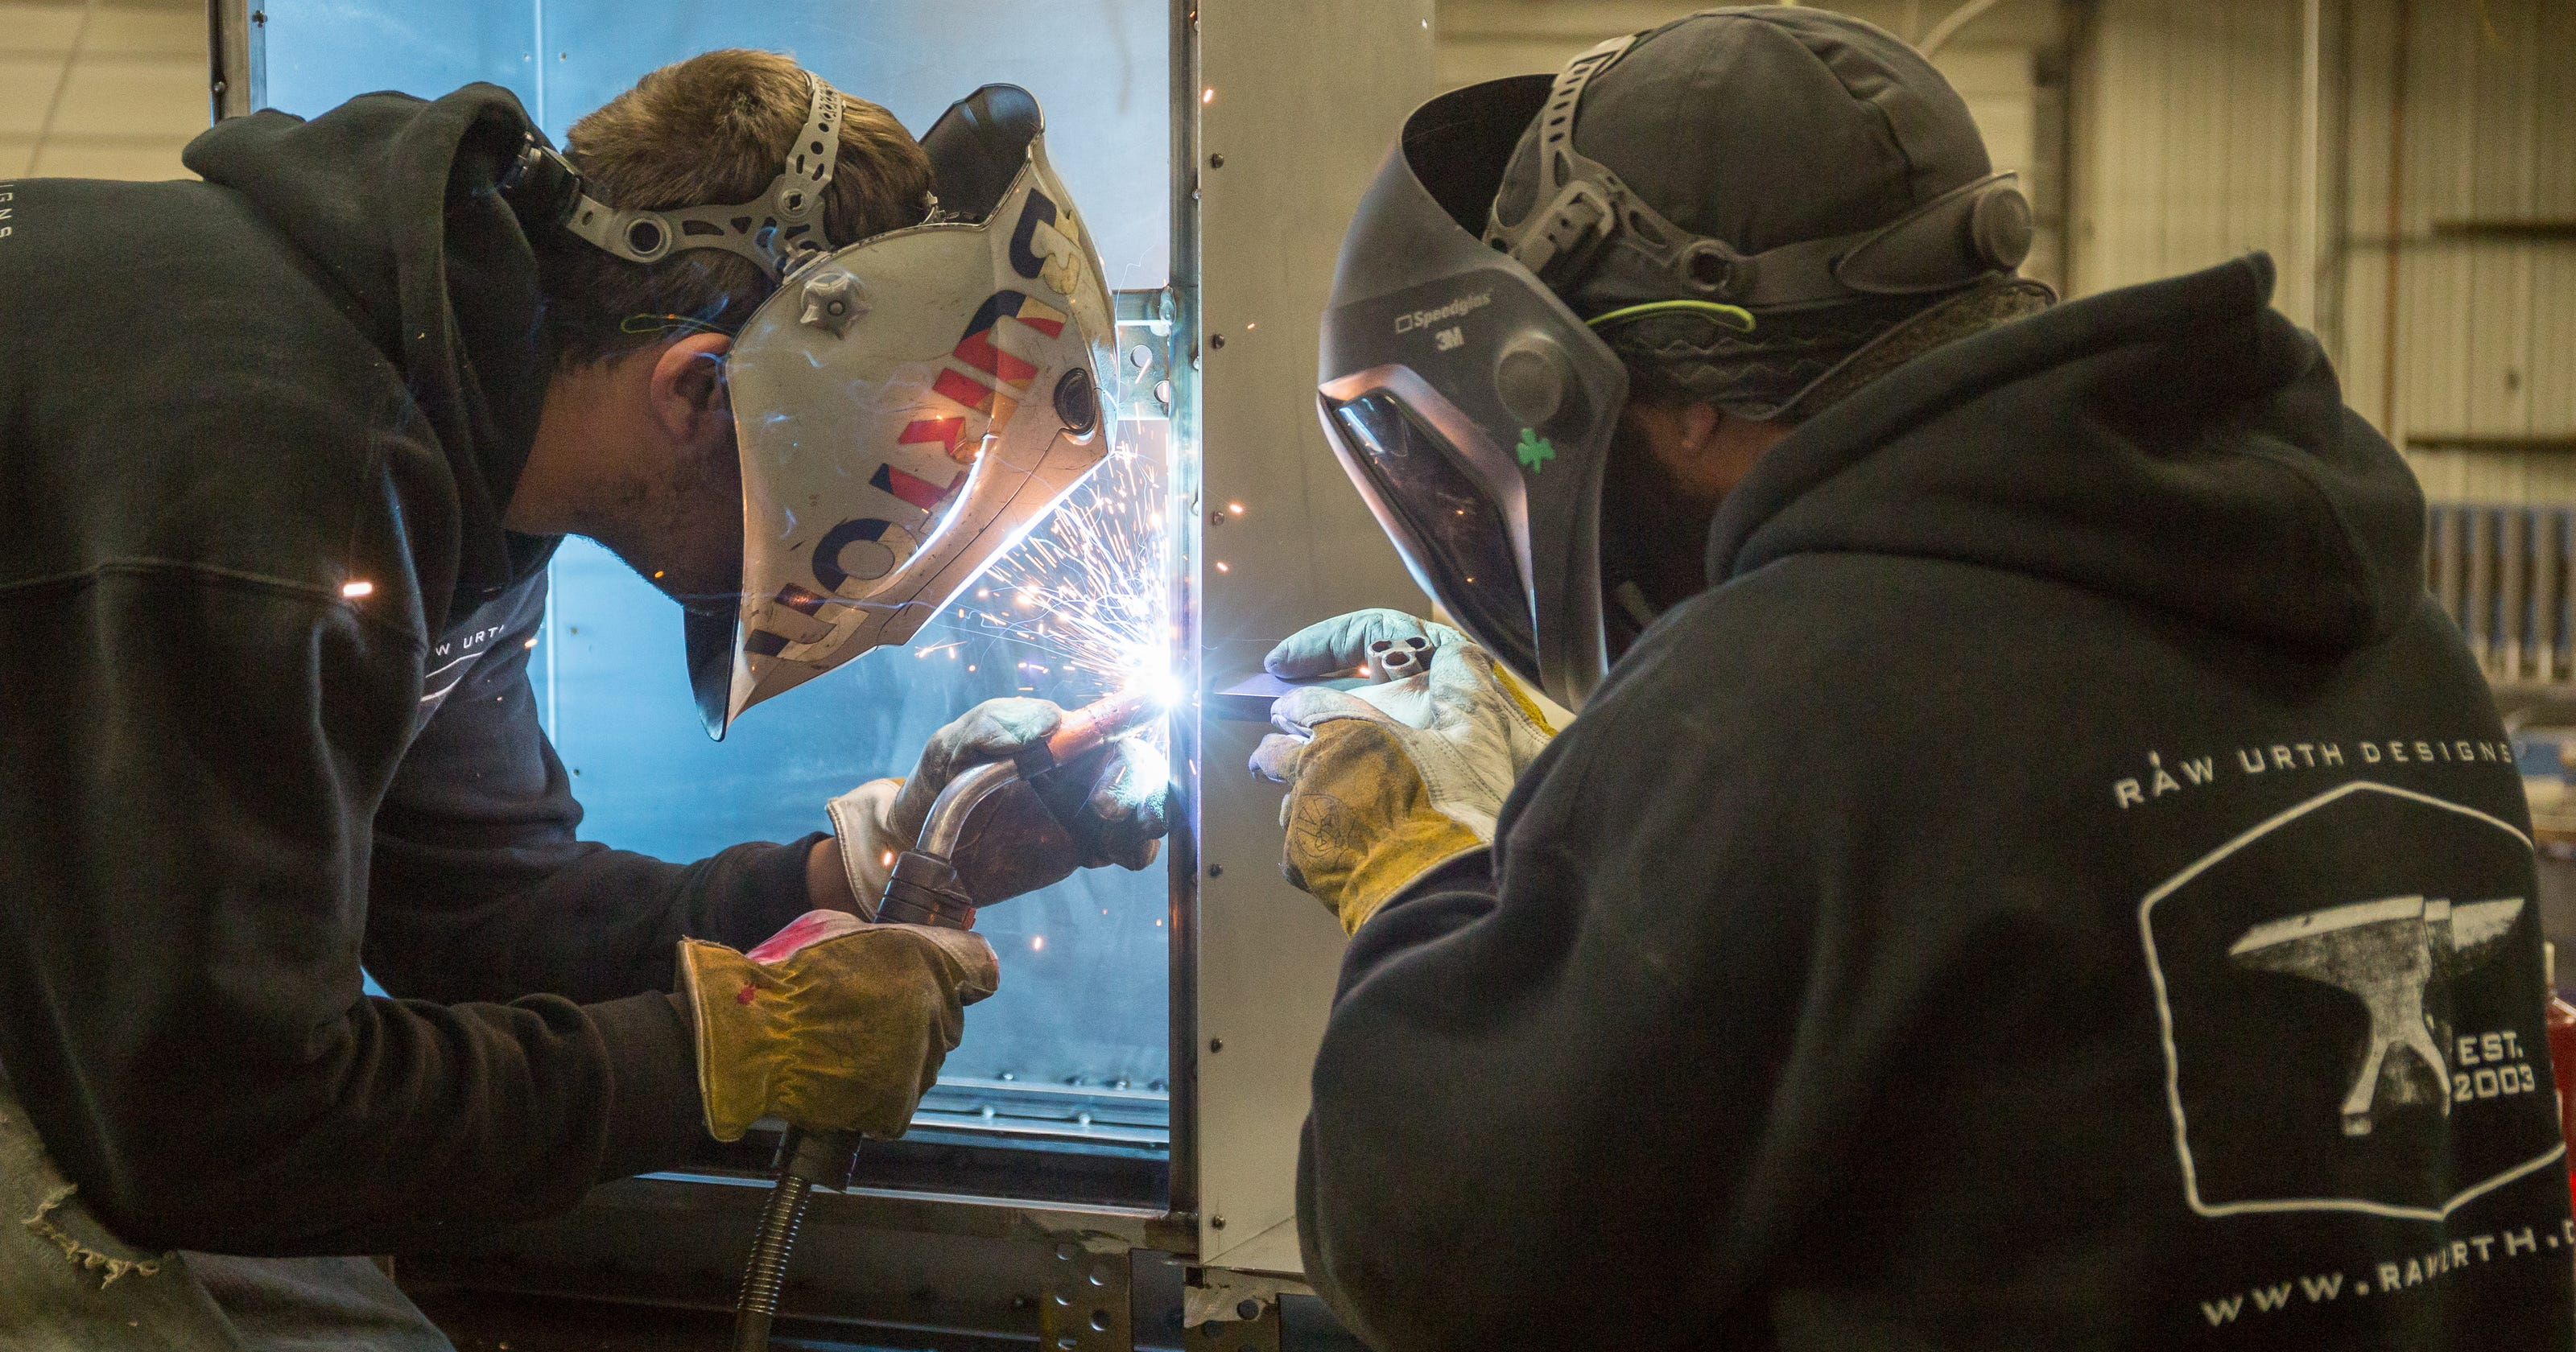 Raw Urth Grows Fort Collins Metal Fabrication Shop